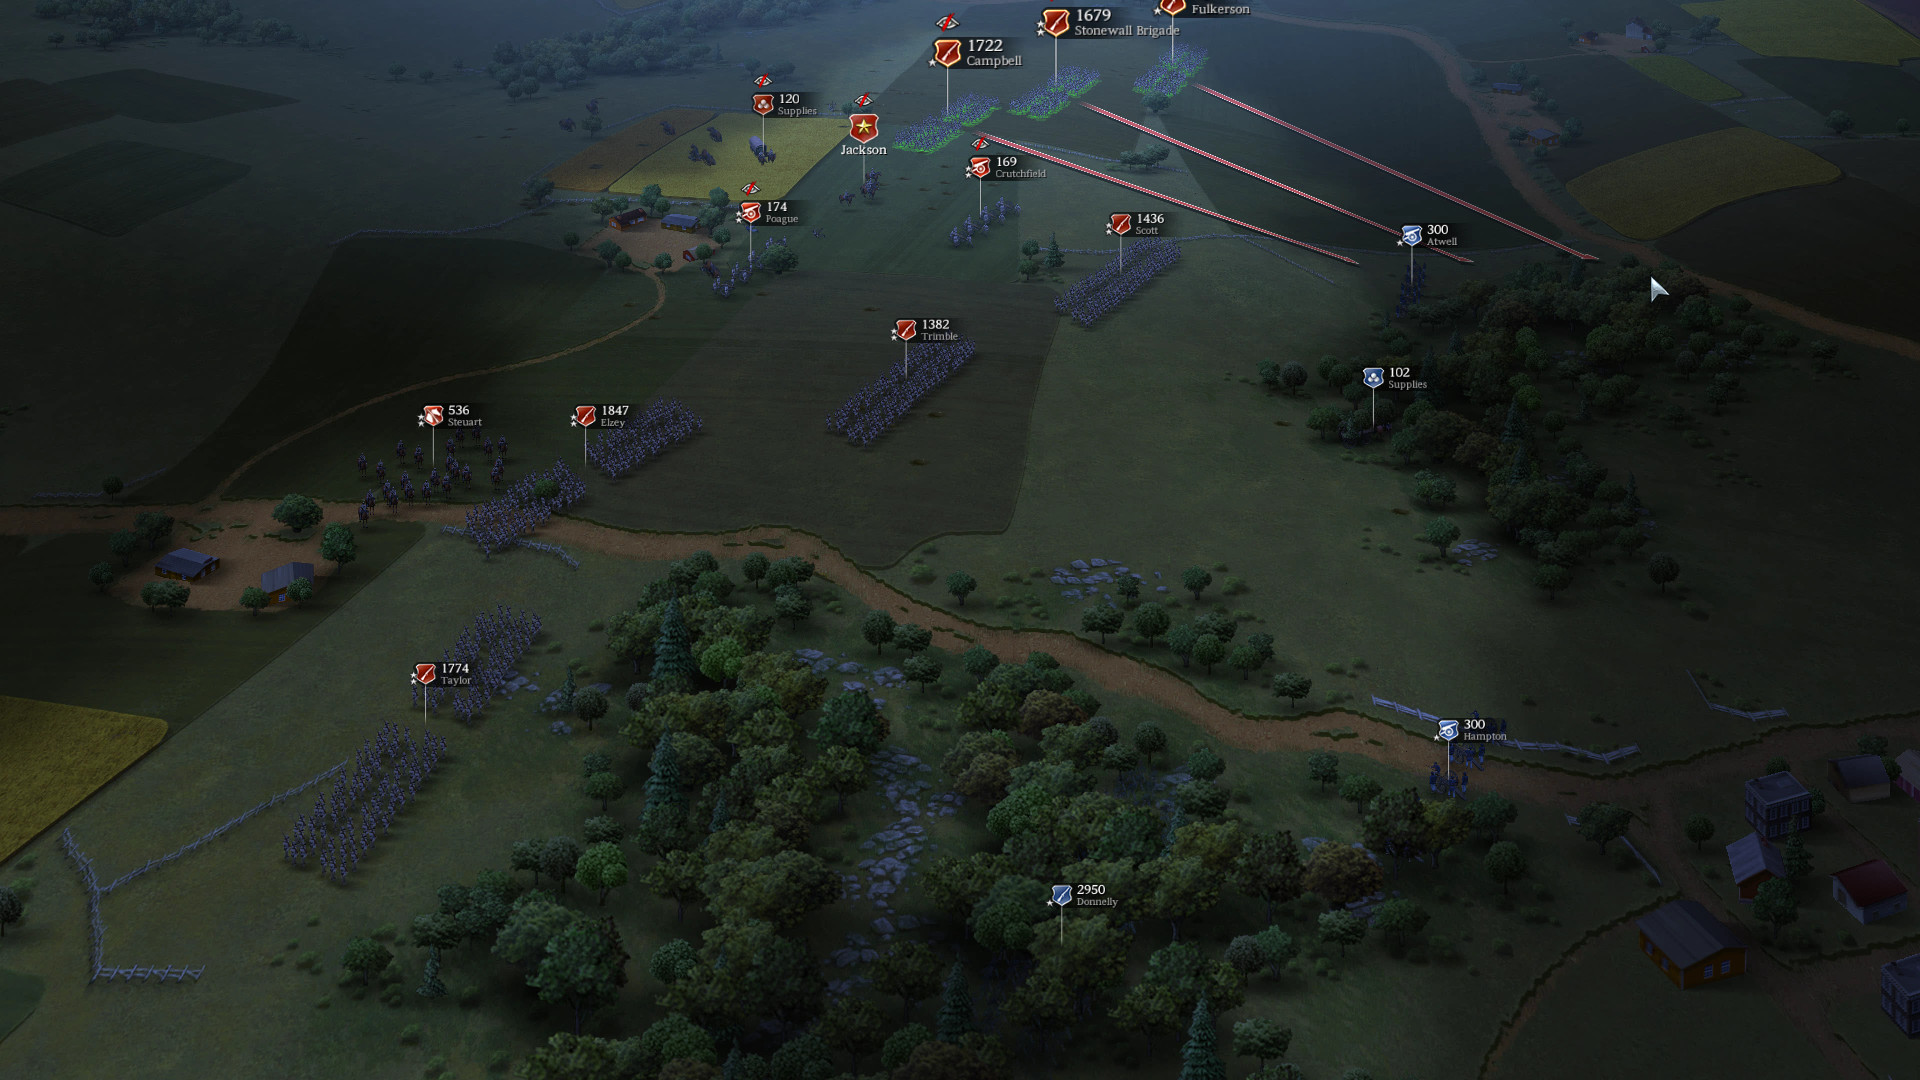 Ultimate General: Civil War Screenshot 3